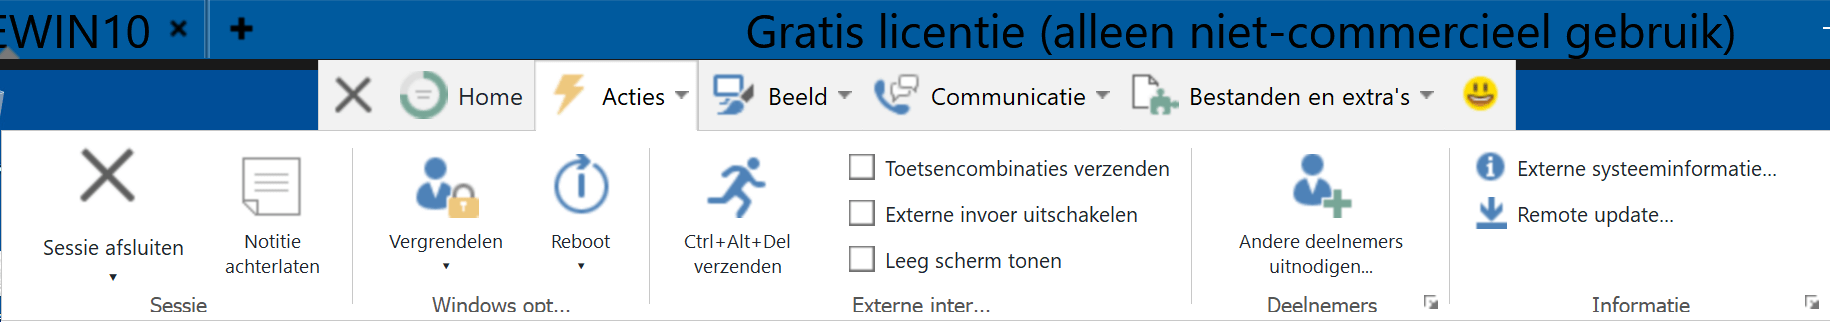 teamviewer optiebalk sel